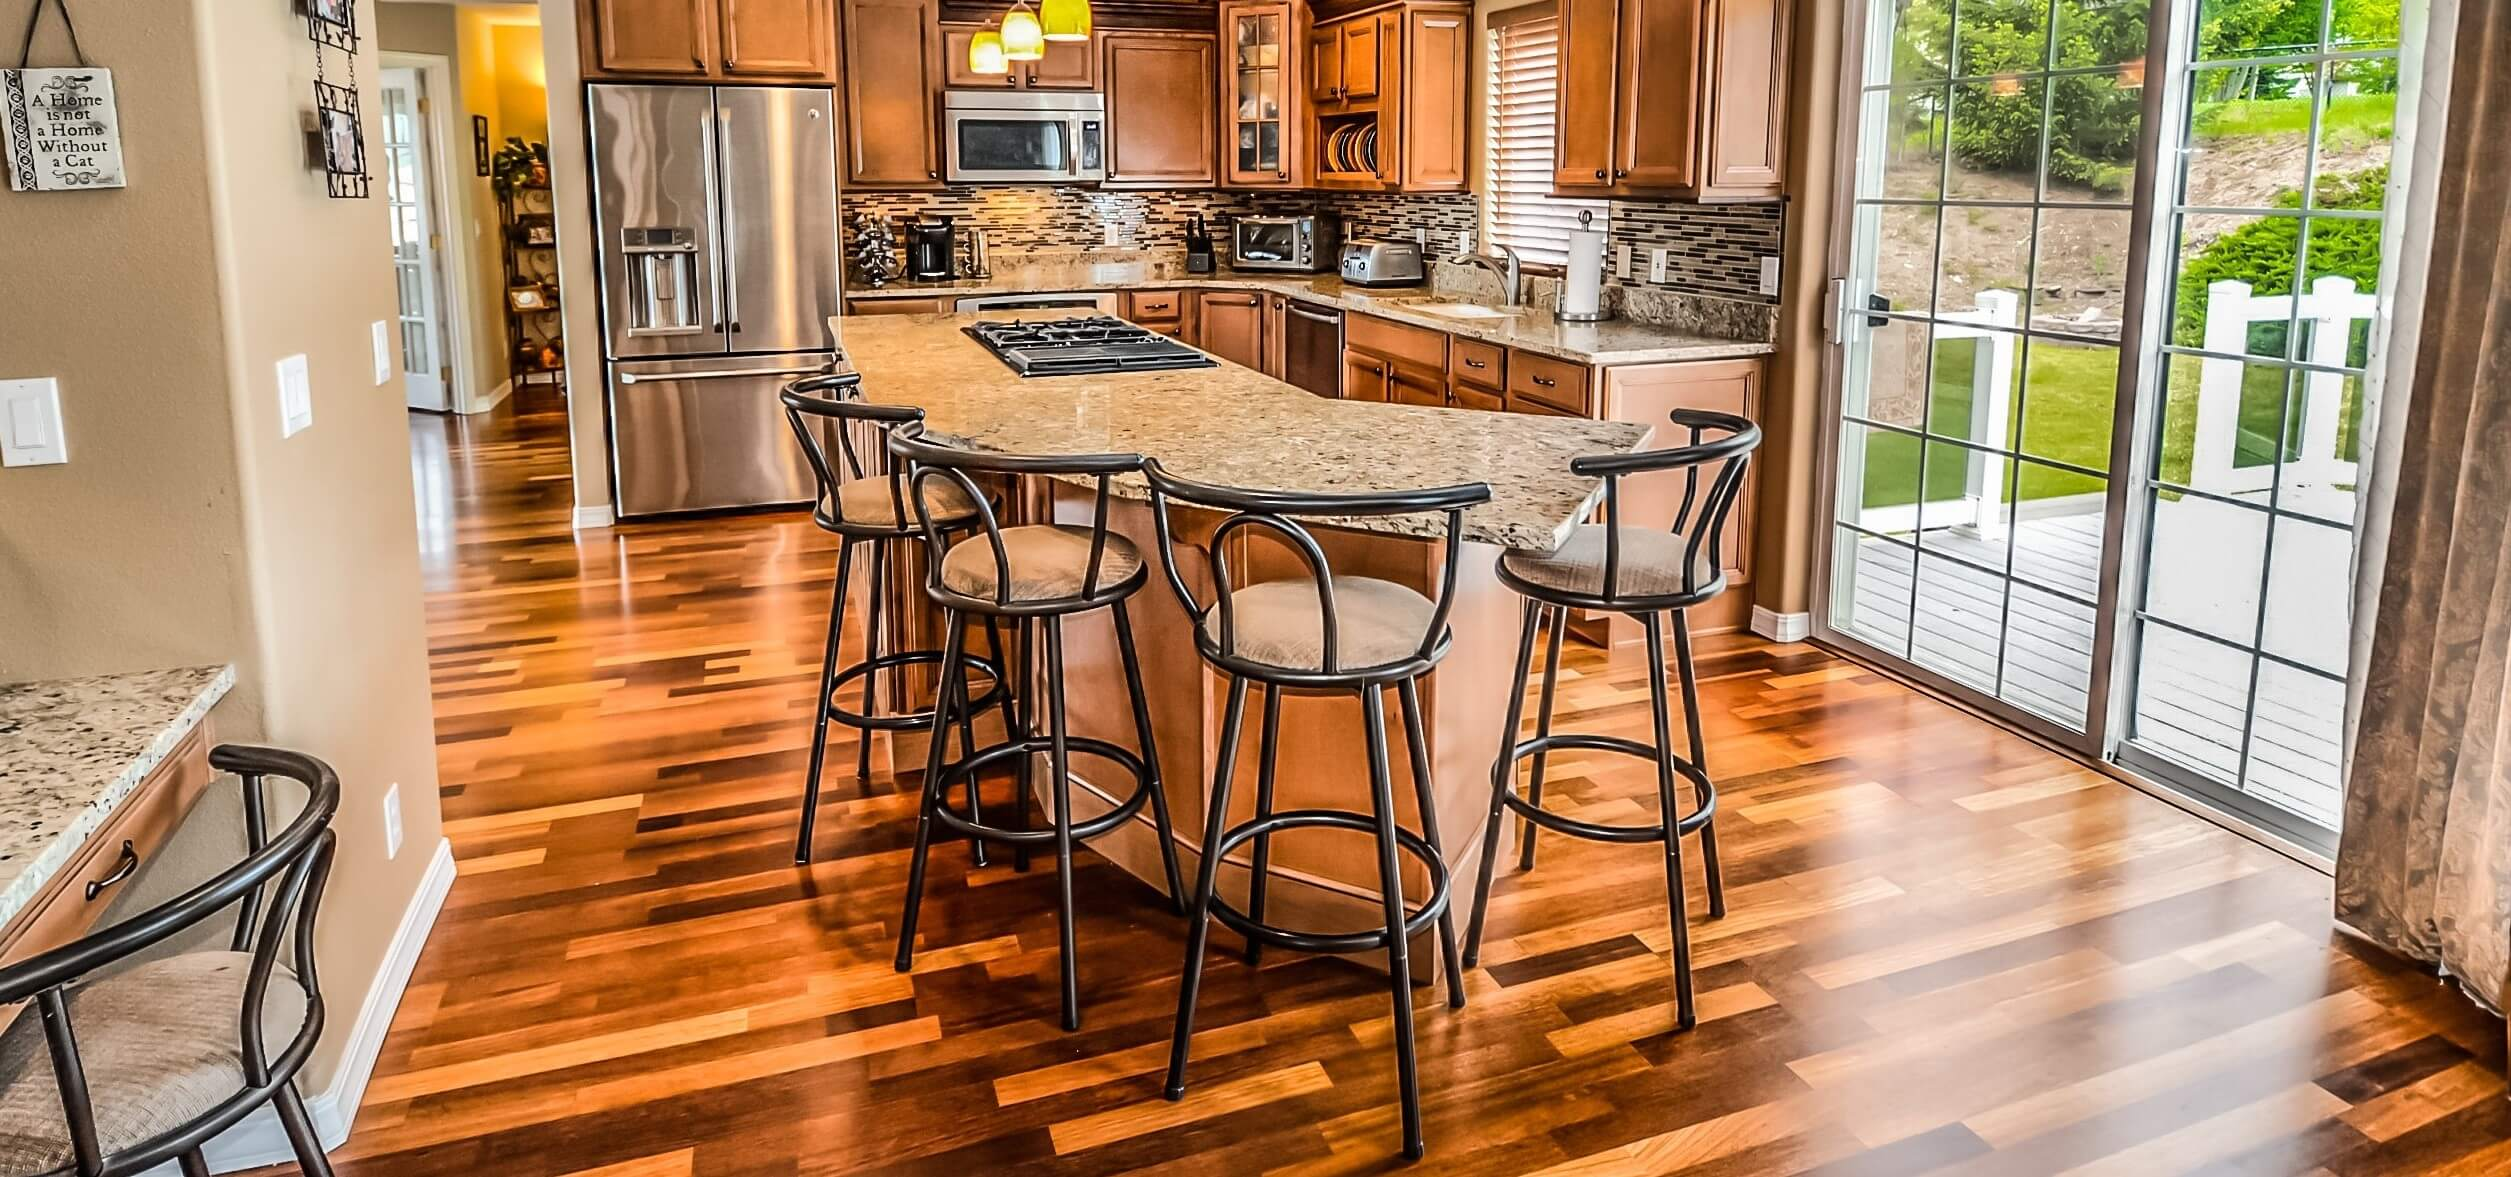 What Are The 5 Most Kitchen Layout in 2021